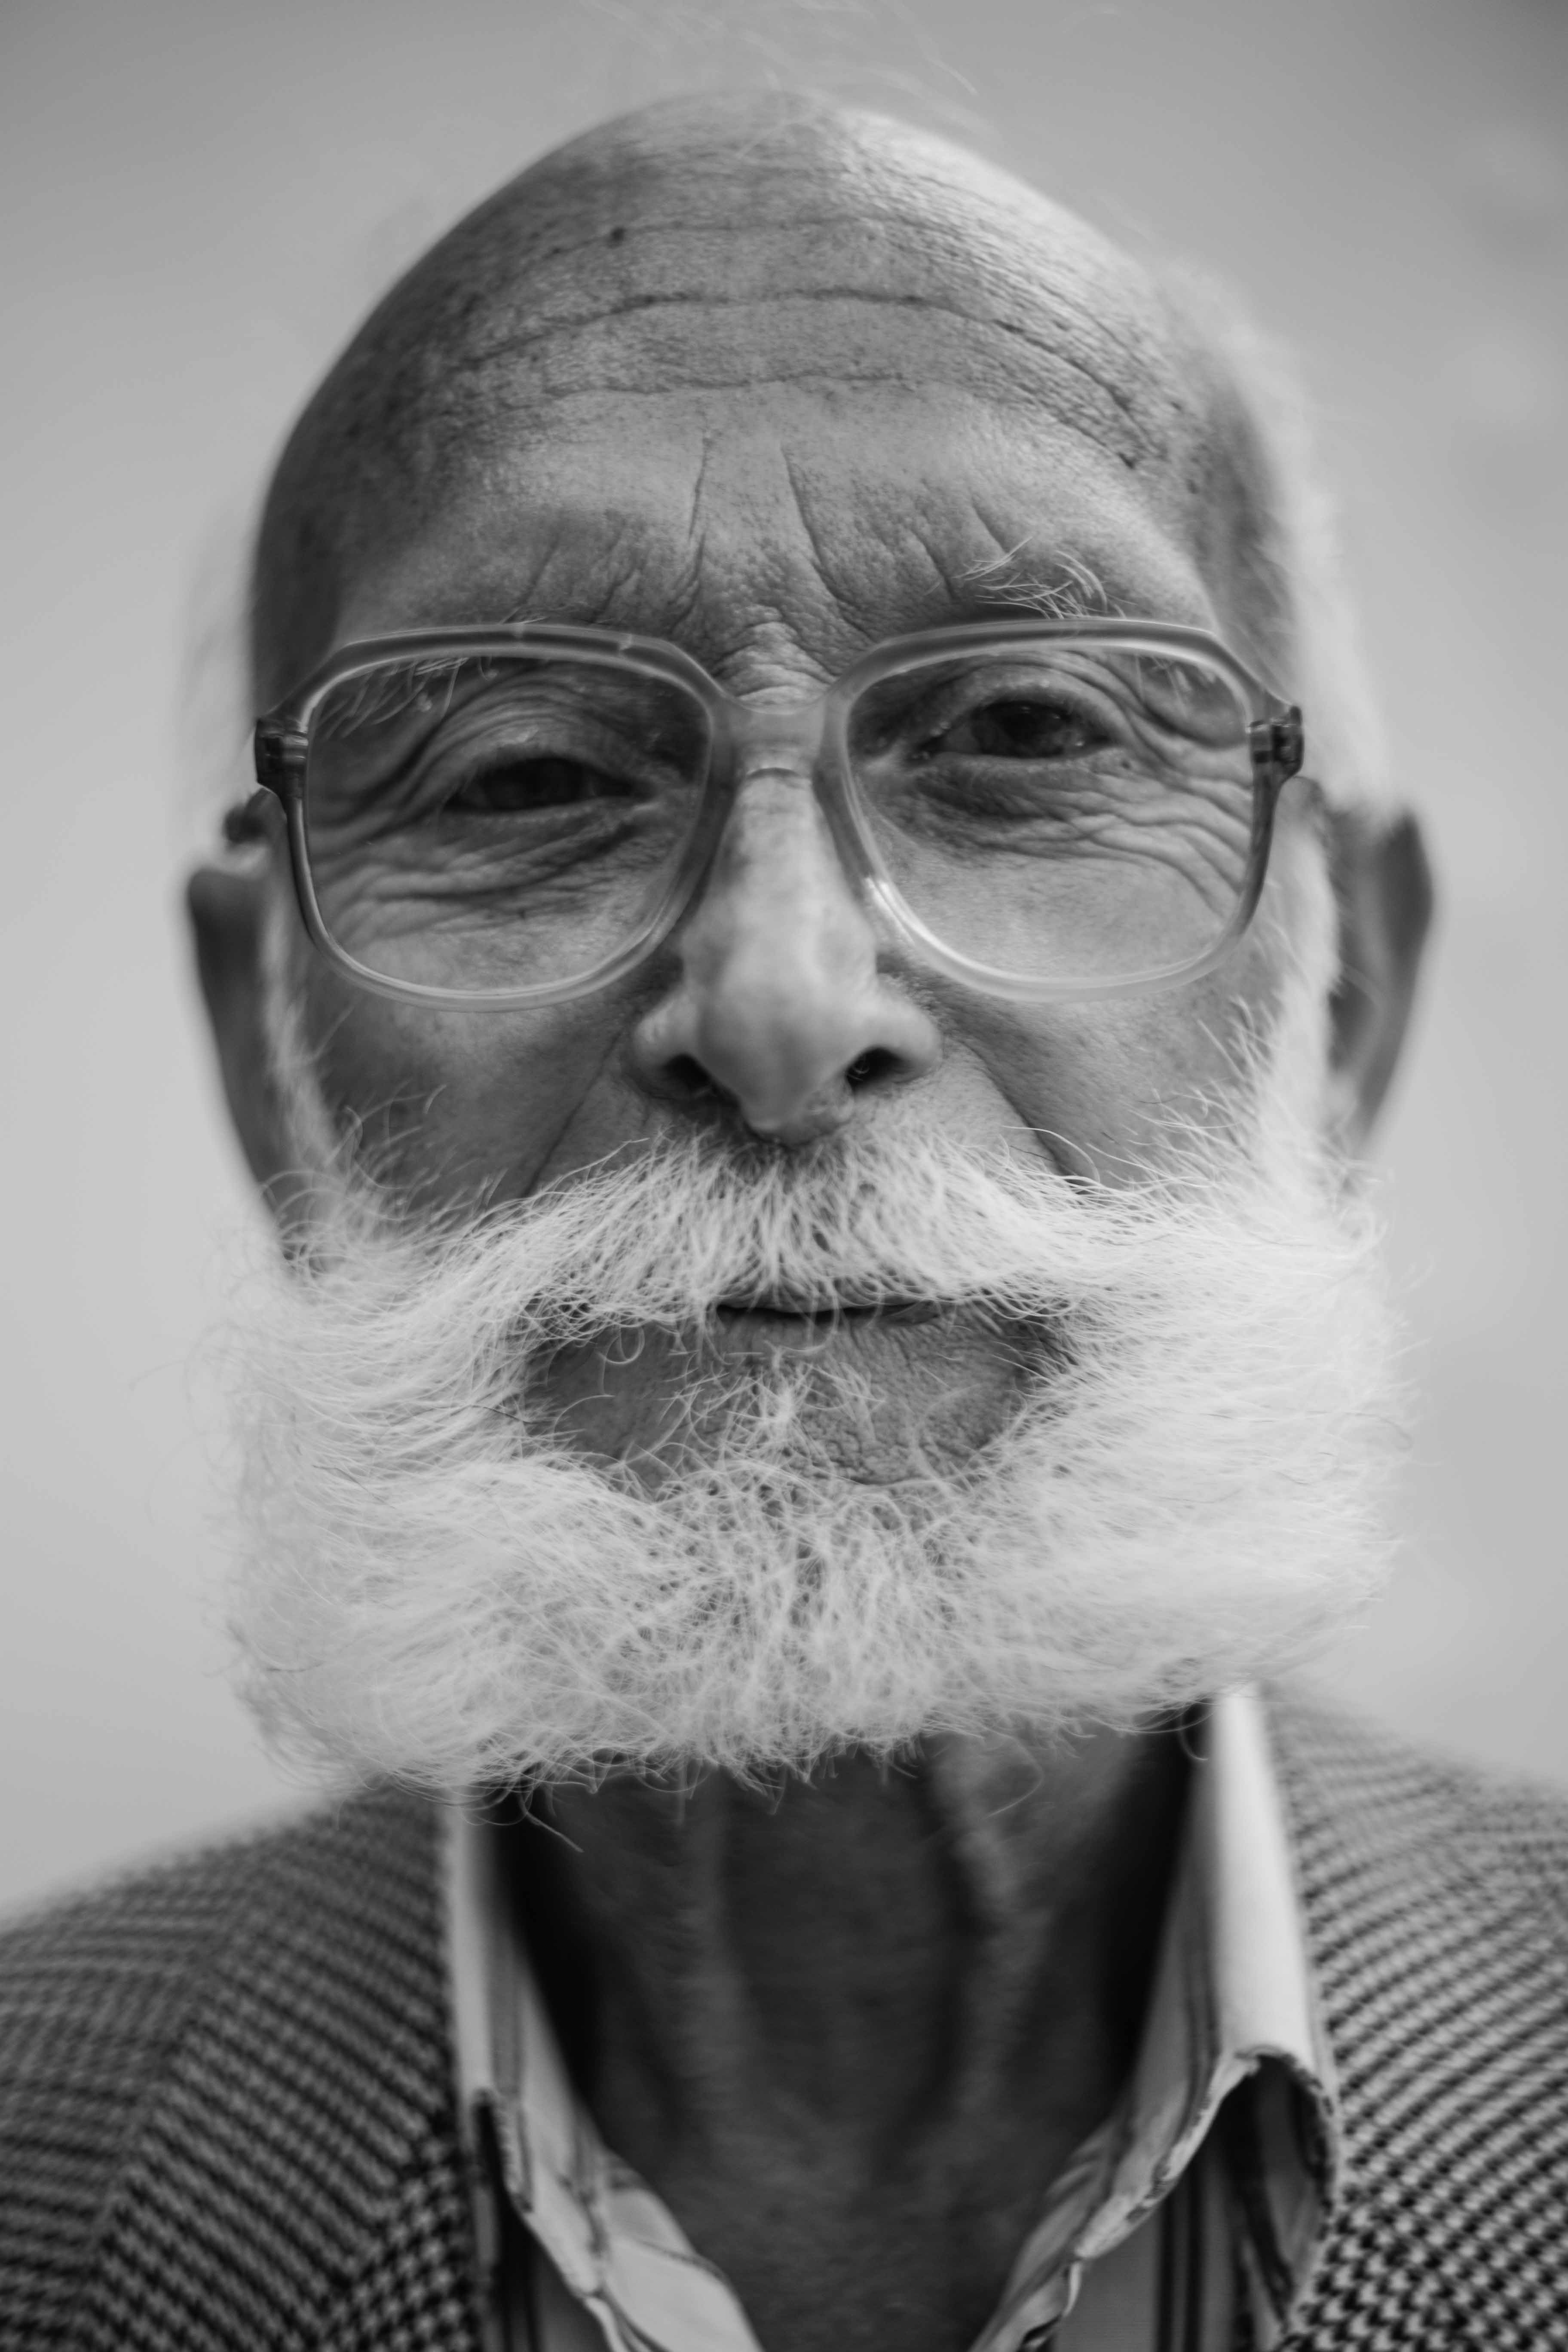 grayscale photo of man wearing eyeglasses